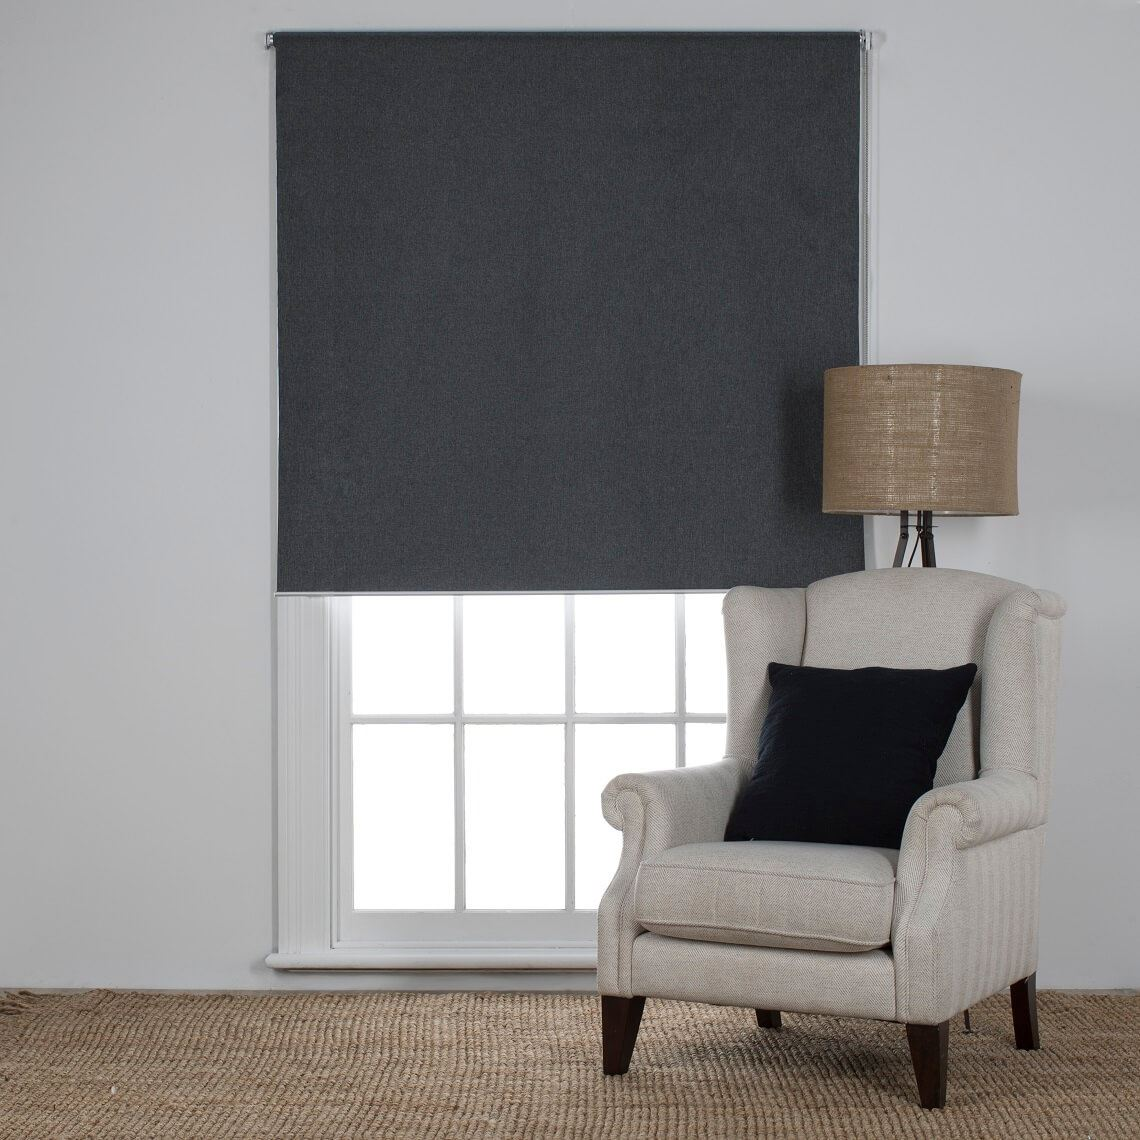 Milton Blockout Roller Blind Size W 90cm x D 0cm x H 210cm in Slate 100% Polyester Freedom by Freedom, a Curtains for sale on Style Sourcebook